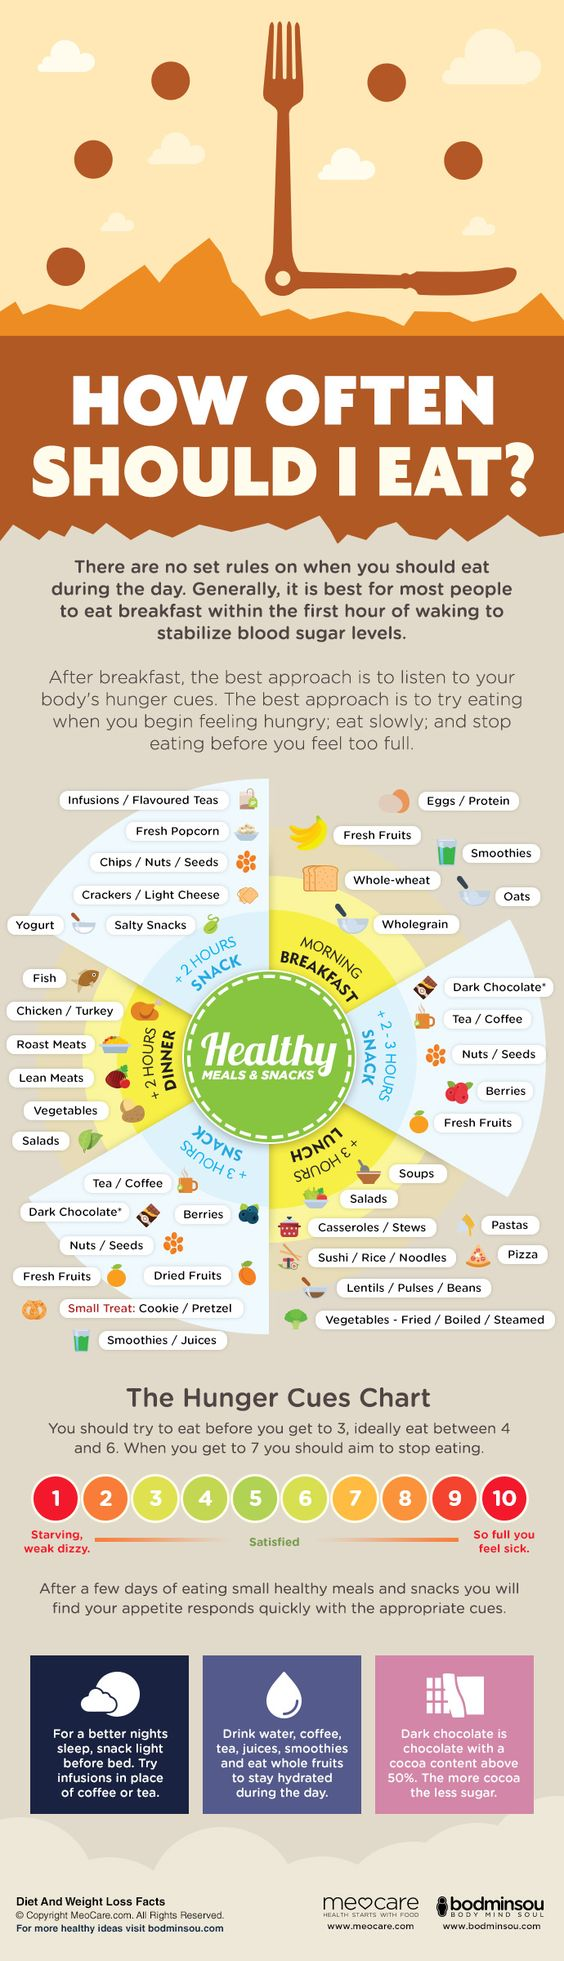 How Often Should I Eat?  Infographic. Audit Group Policy Changes Un Potty Training. Zero Down Mortgage Loan Service Now Itsm Tool. Assisted Living Georgetown Tx. Healthcare Application Development. Esl Teaching Certification Online. Degree In Business Analytics. 3 Week Old Baby Feeding Schedule. What Does A Gram Of Weed Look Like